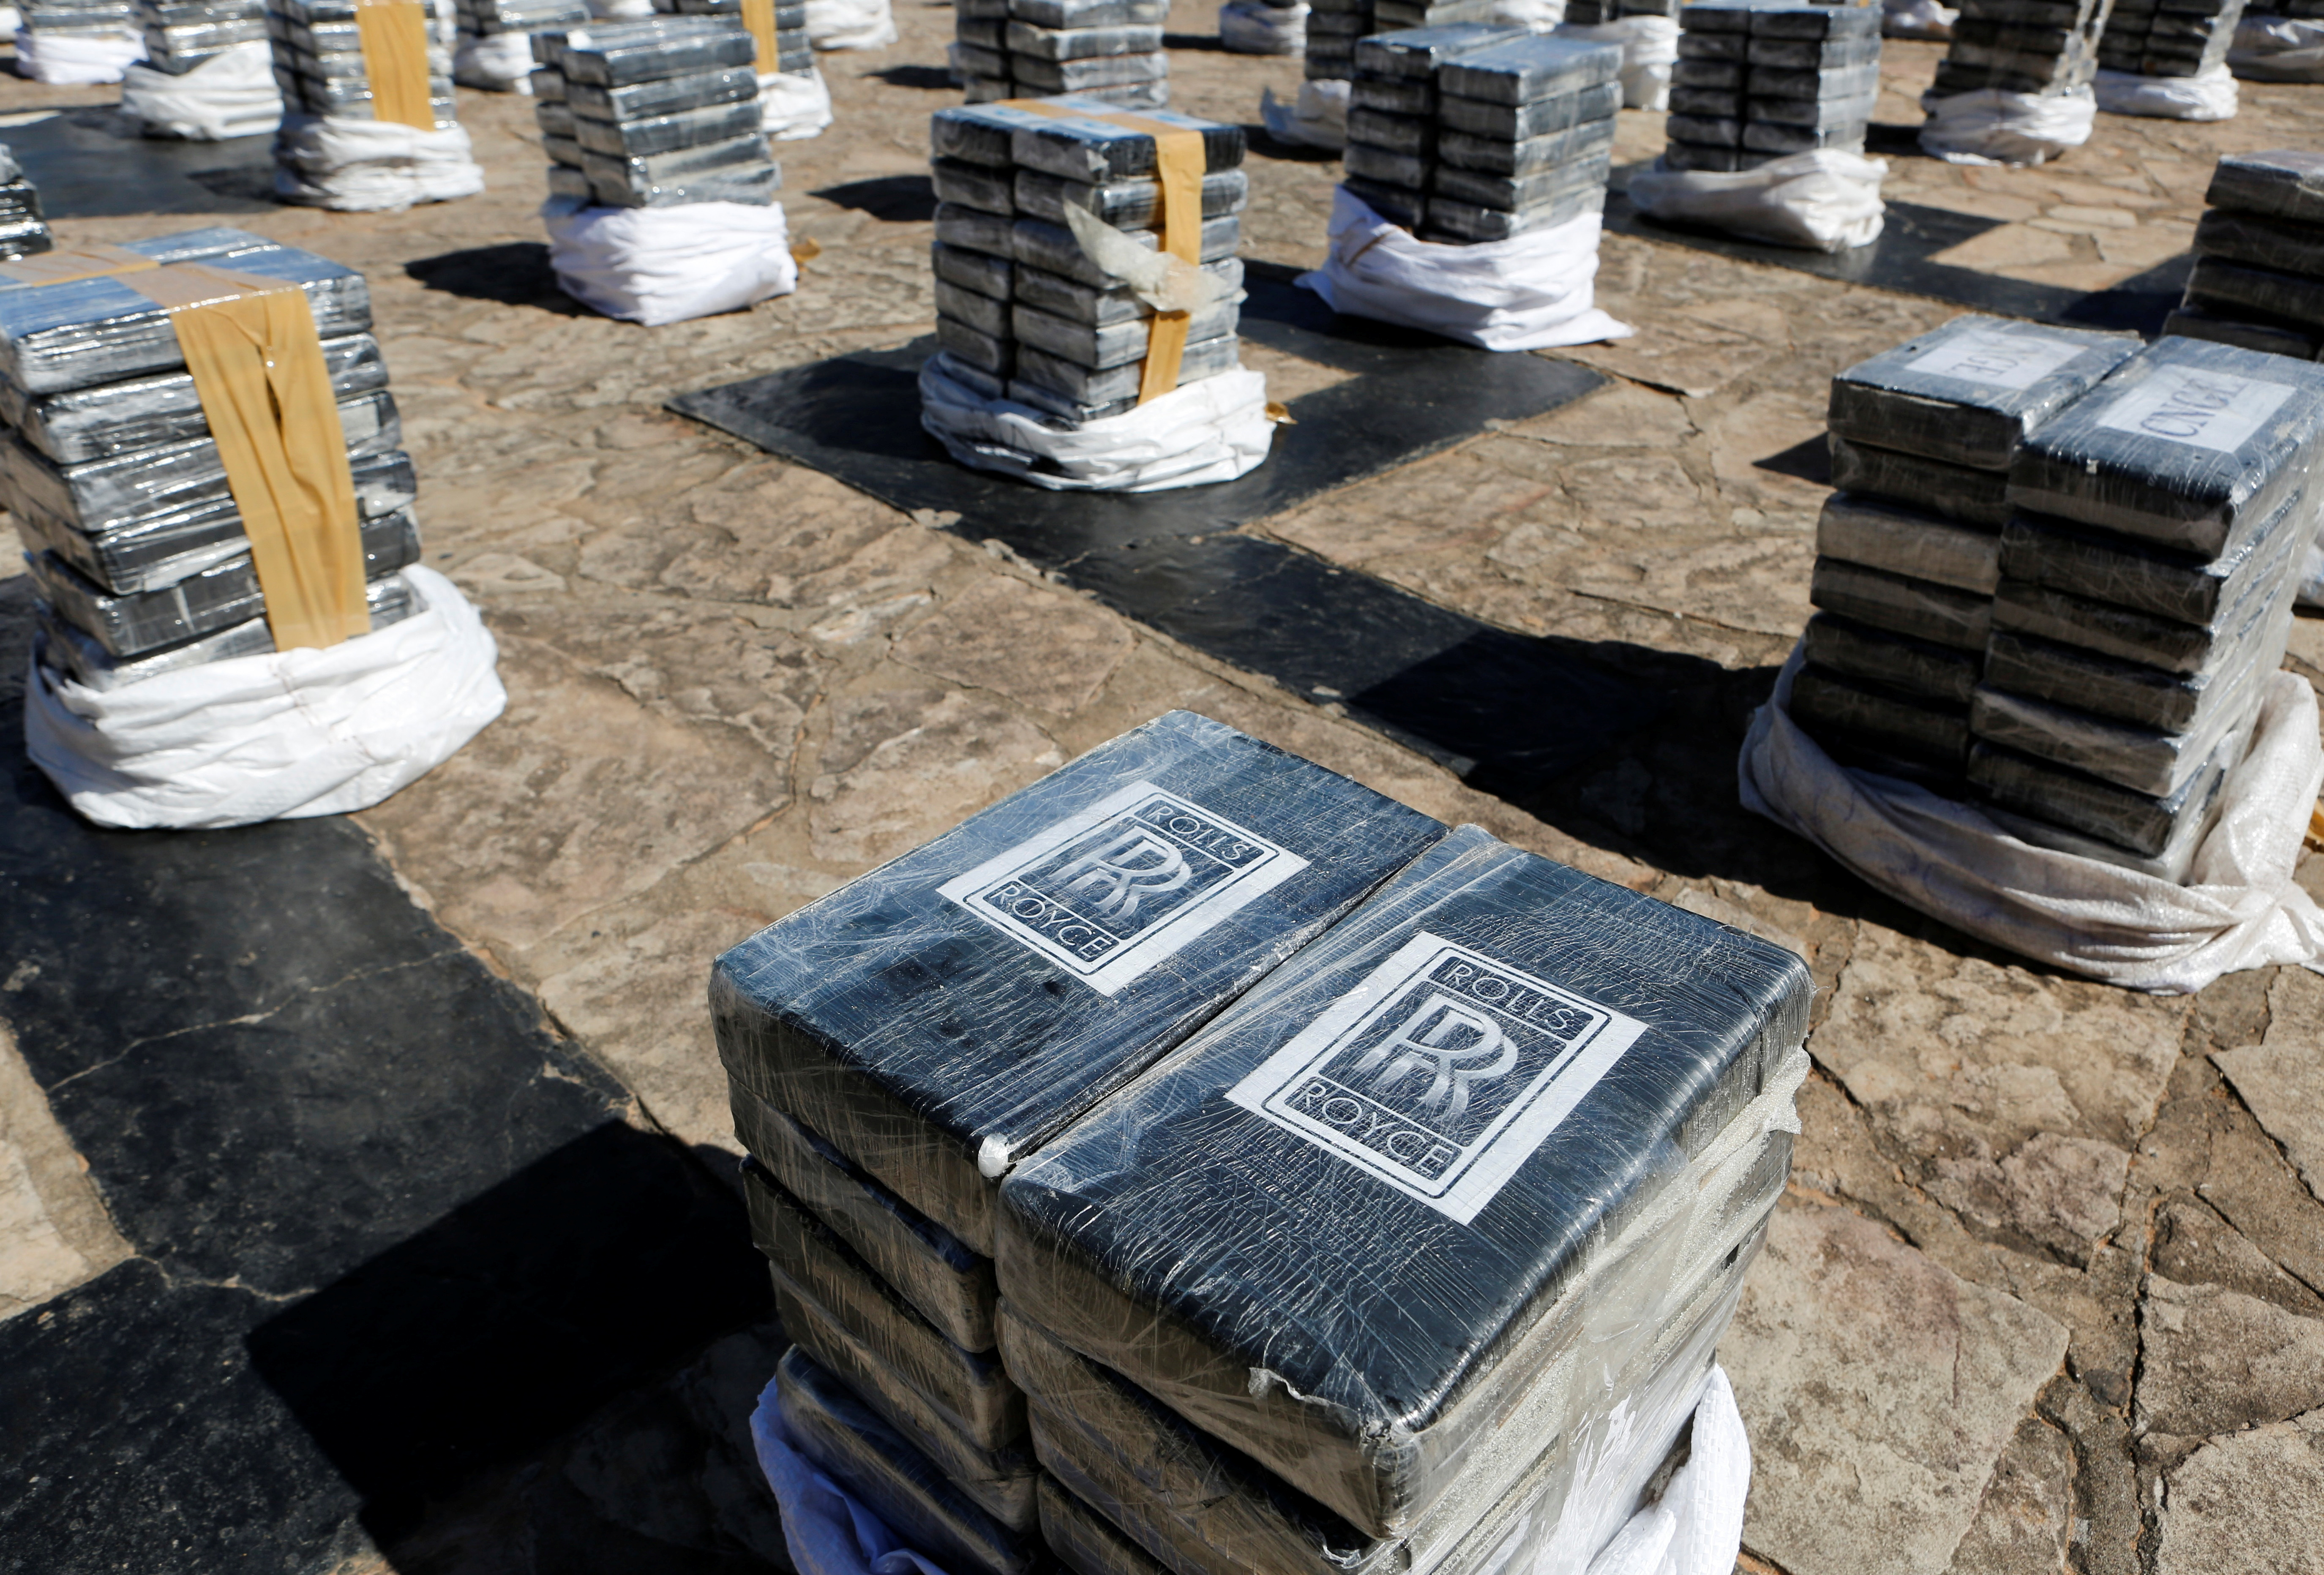 Packages containing cocaine, which were found in a warehouse ready to be shipped abroad along with a load of organic sugar according to authorities, are seen put on display by Paraguayan police in Asuncion, Paraguay July 28, 2021. REUTERS/Cesar Olmedo